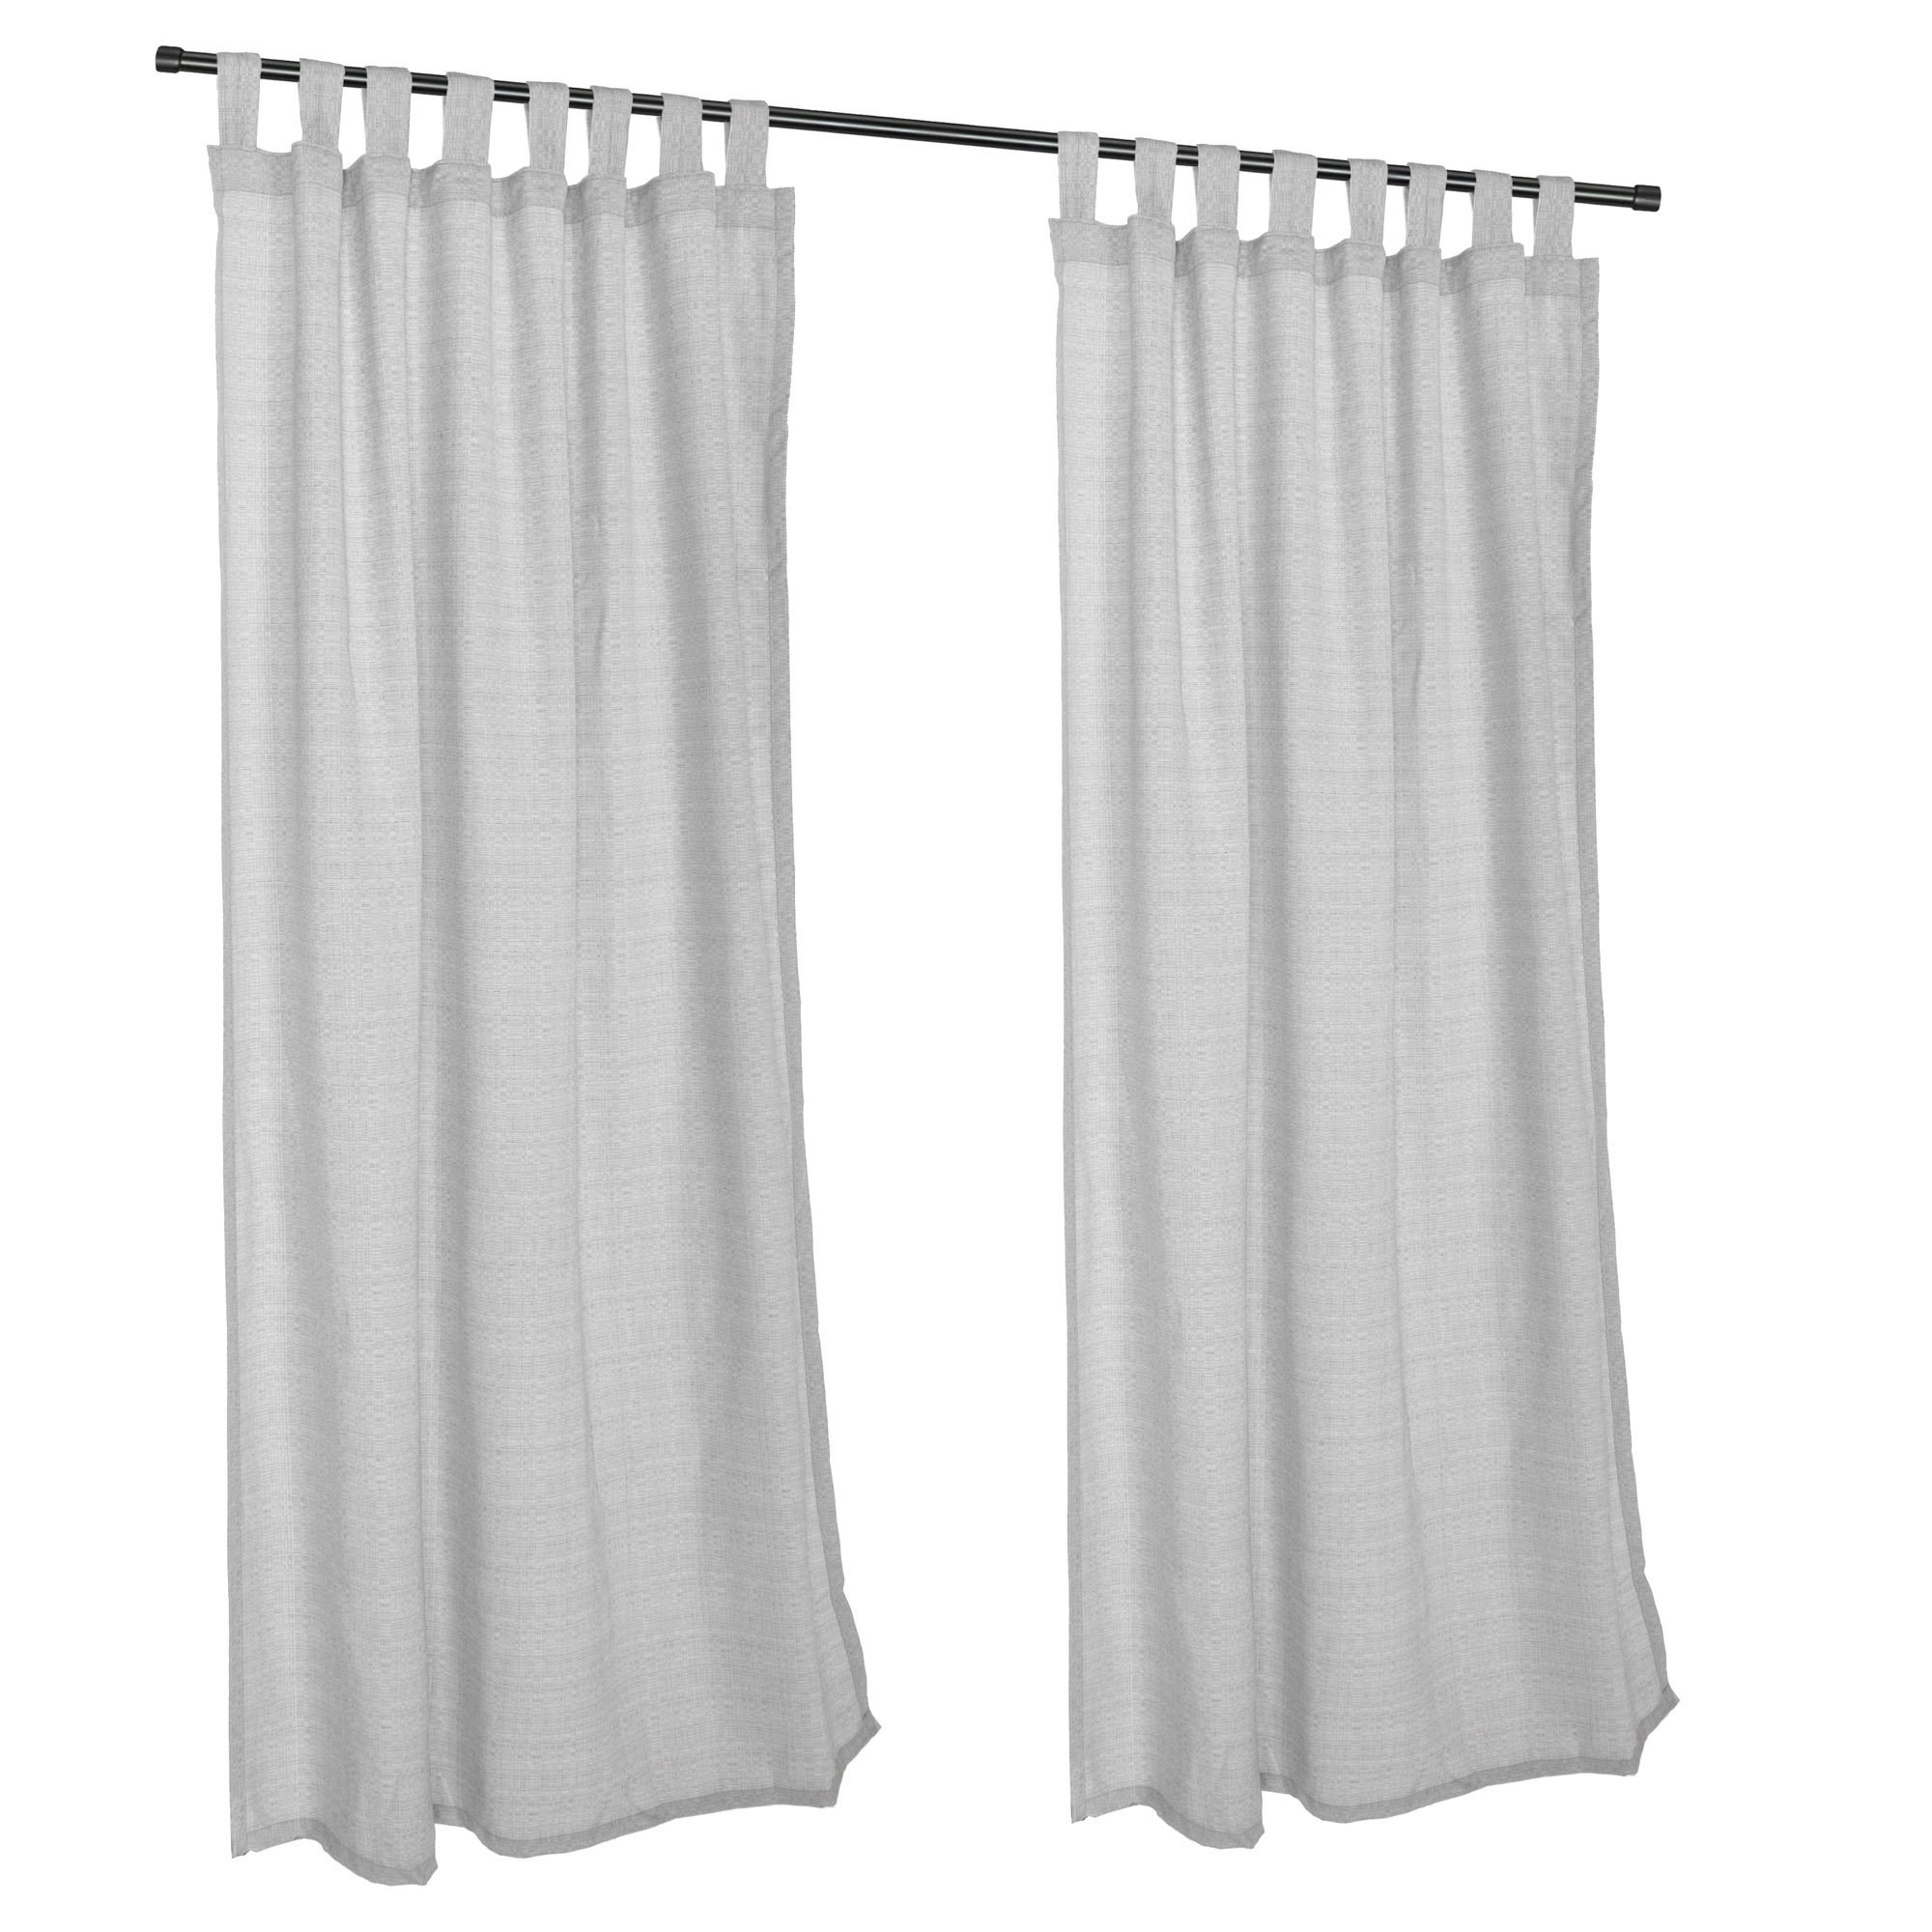 Outdoor Curtains CUR108CLS 54 in. x 108 in. Sunbrella Outdoor Curtain with Tabs - Cilantro by Essentials by DFO